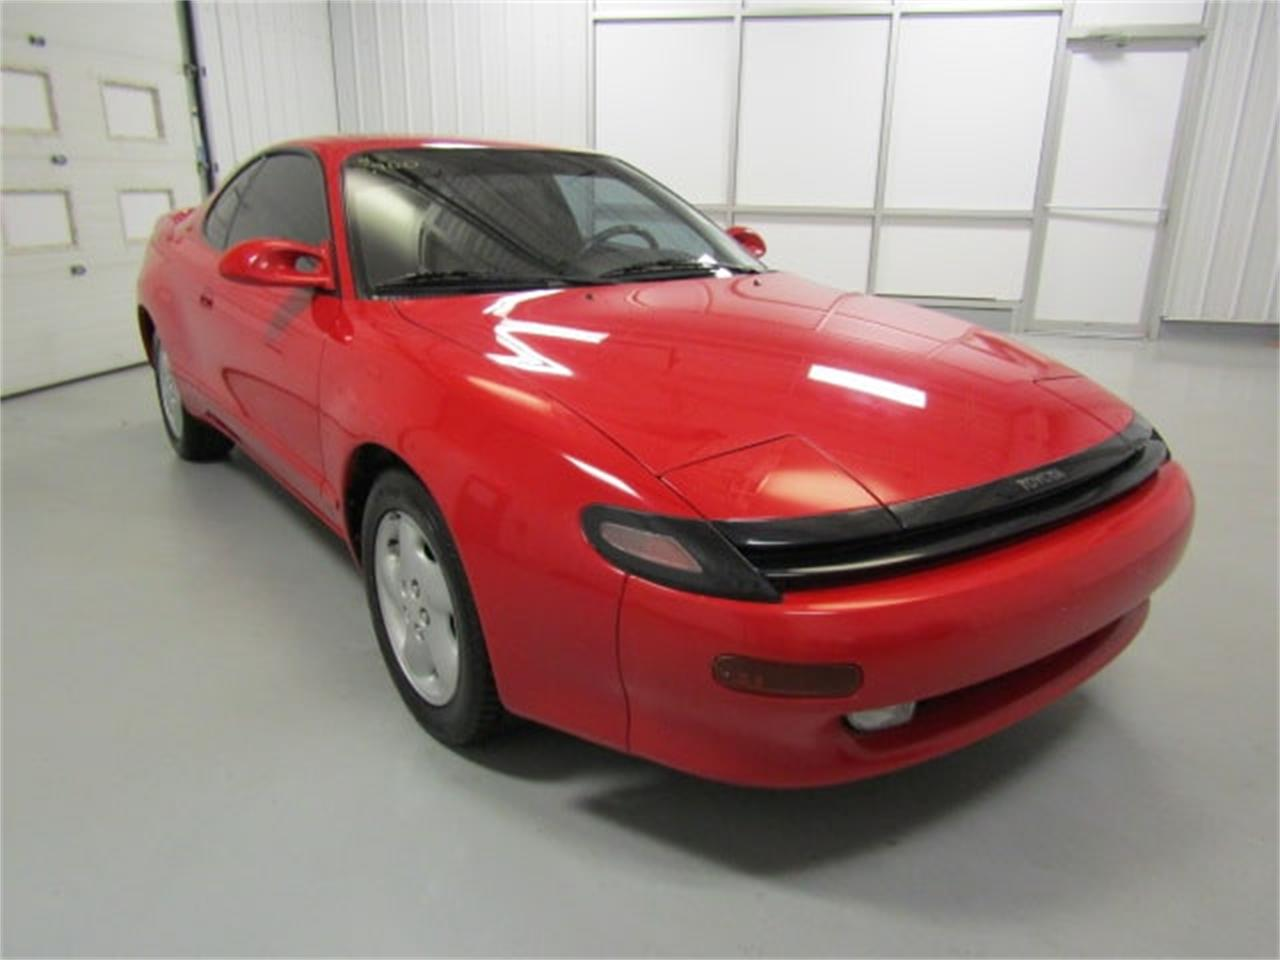 Large Picture of '90 Toyota Celica - $7,918.00 - LI31